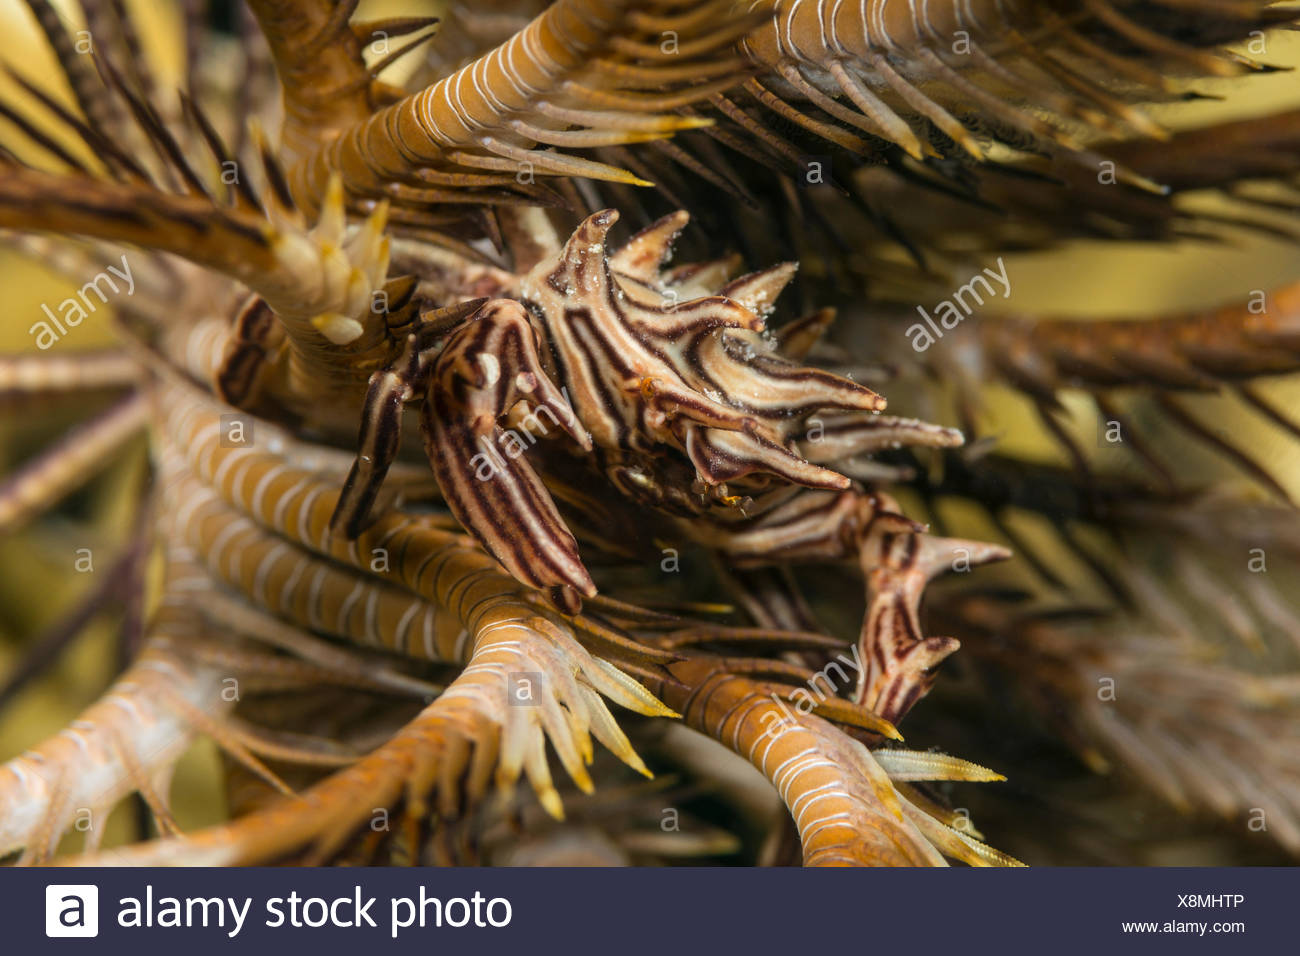 Feather Star Crab, Tiaramedon spinosus, Marsa Alam, Red Sea, Egypt - Stock Image